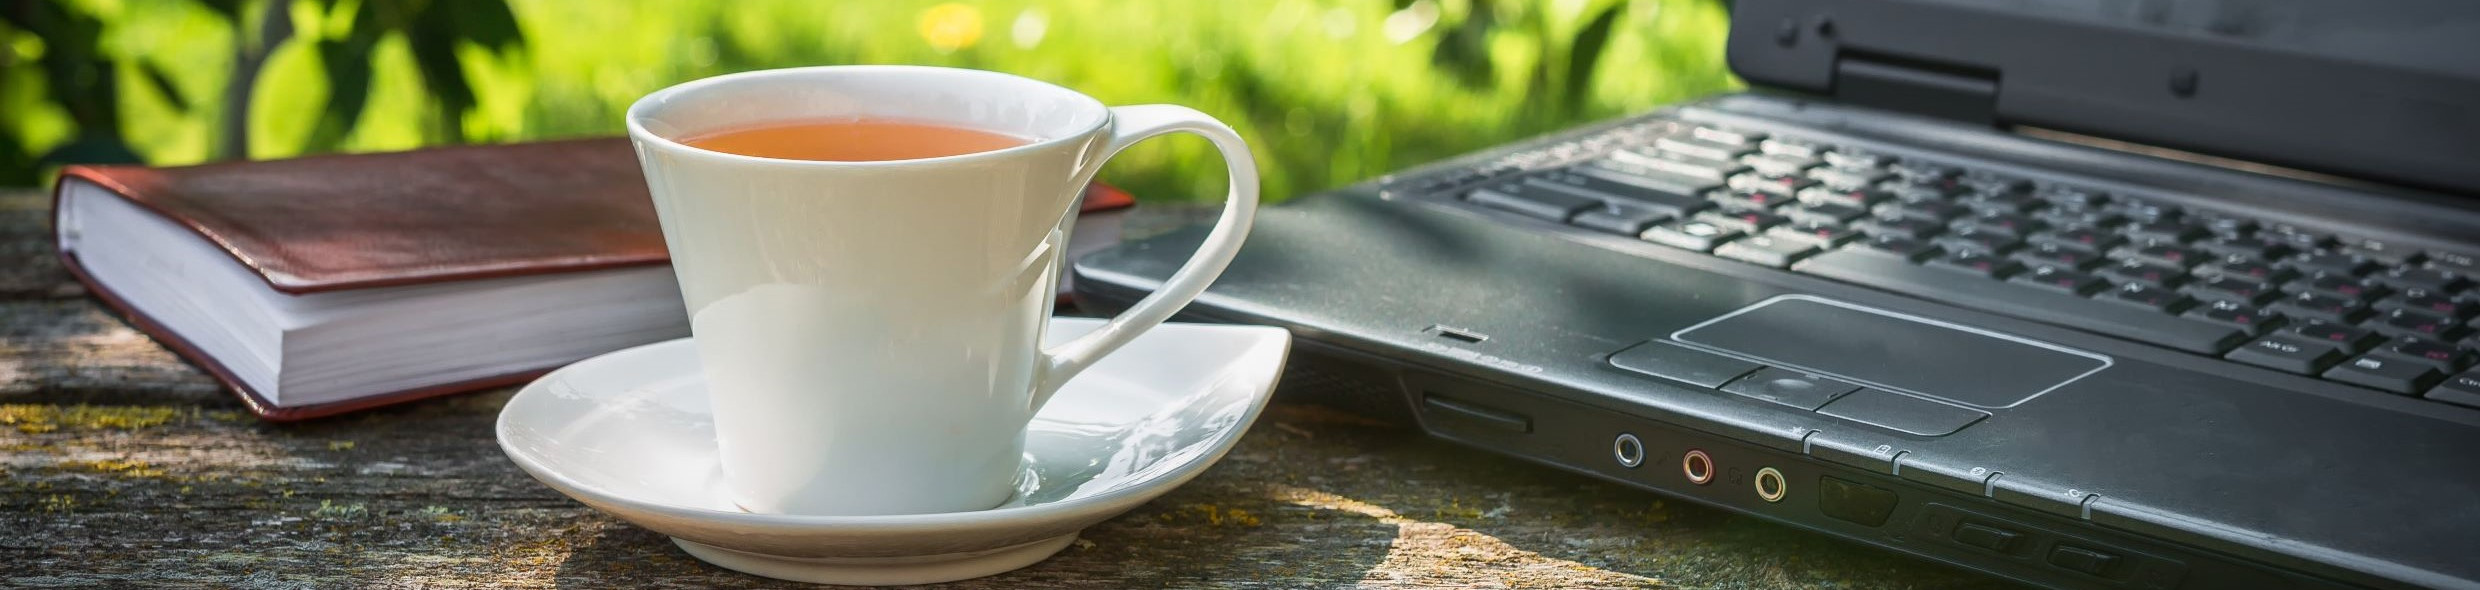 Laptop, book and cup of tea on an wooden table outdoors